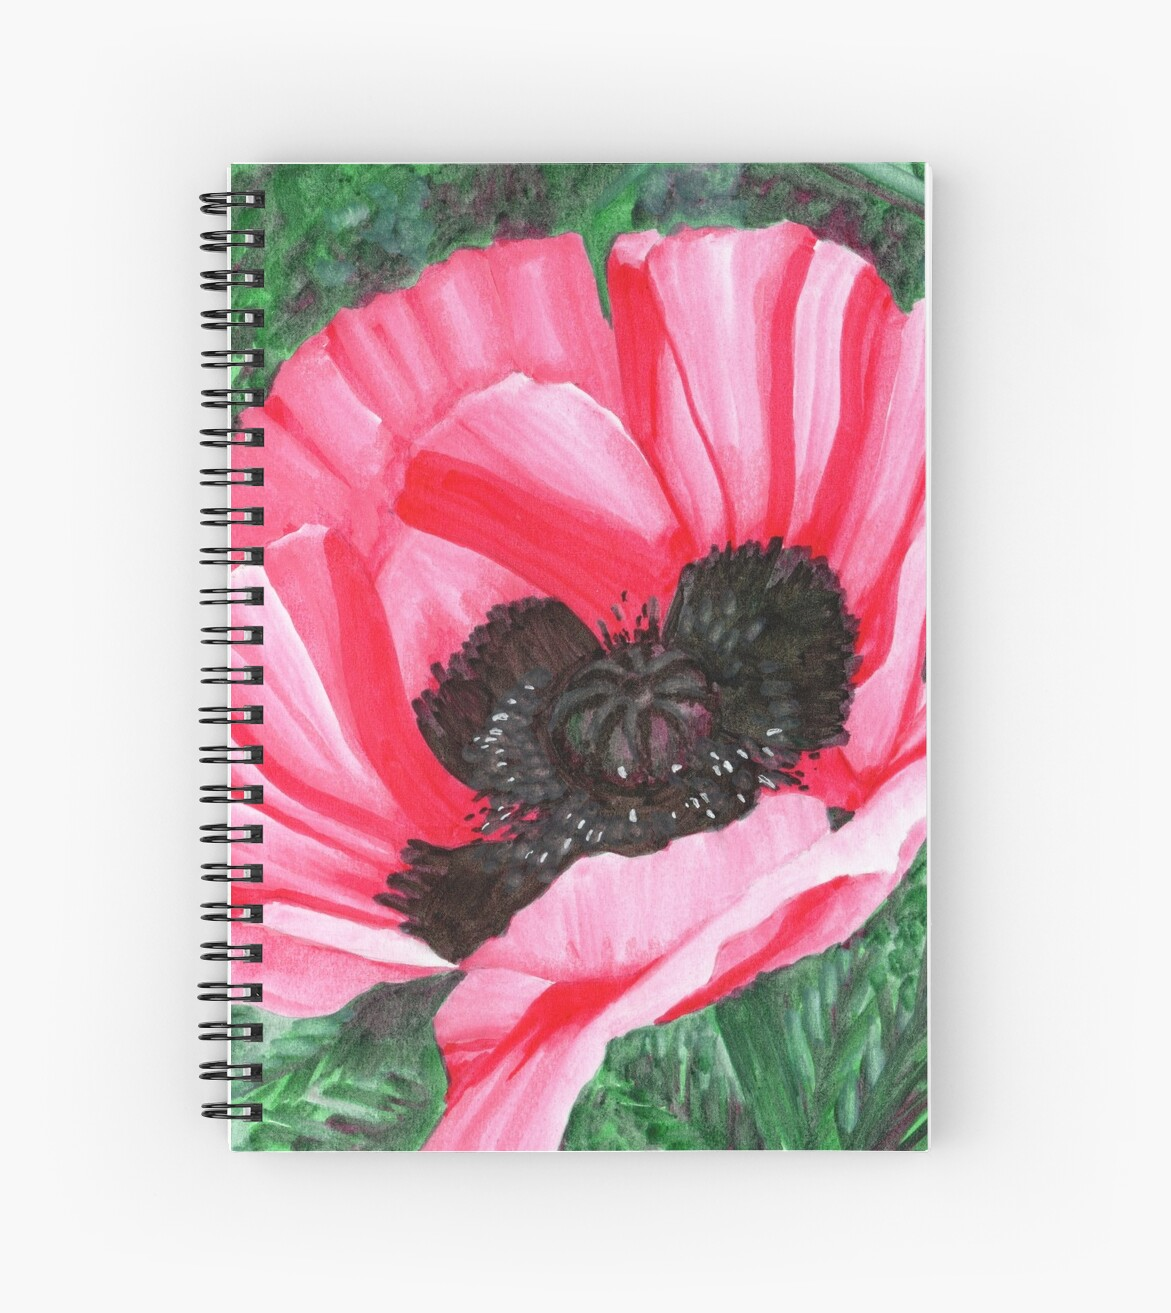 Pink Poppy Flower Pigment Marker Drawing Spiral Notebooks By Gee